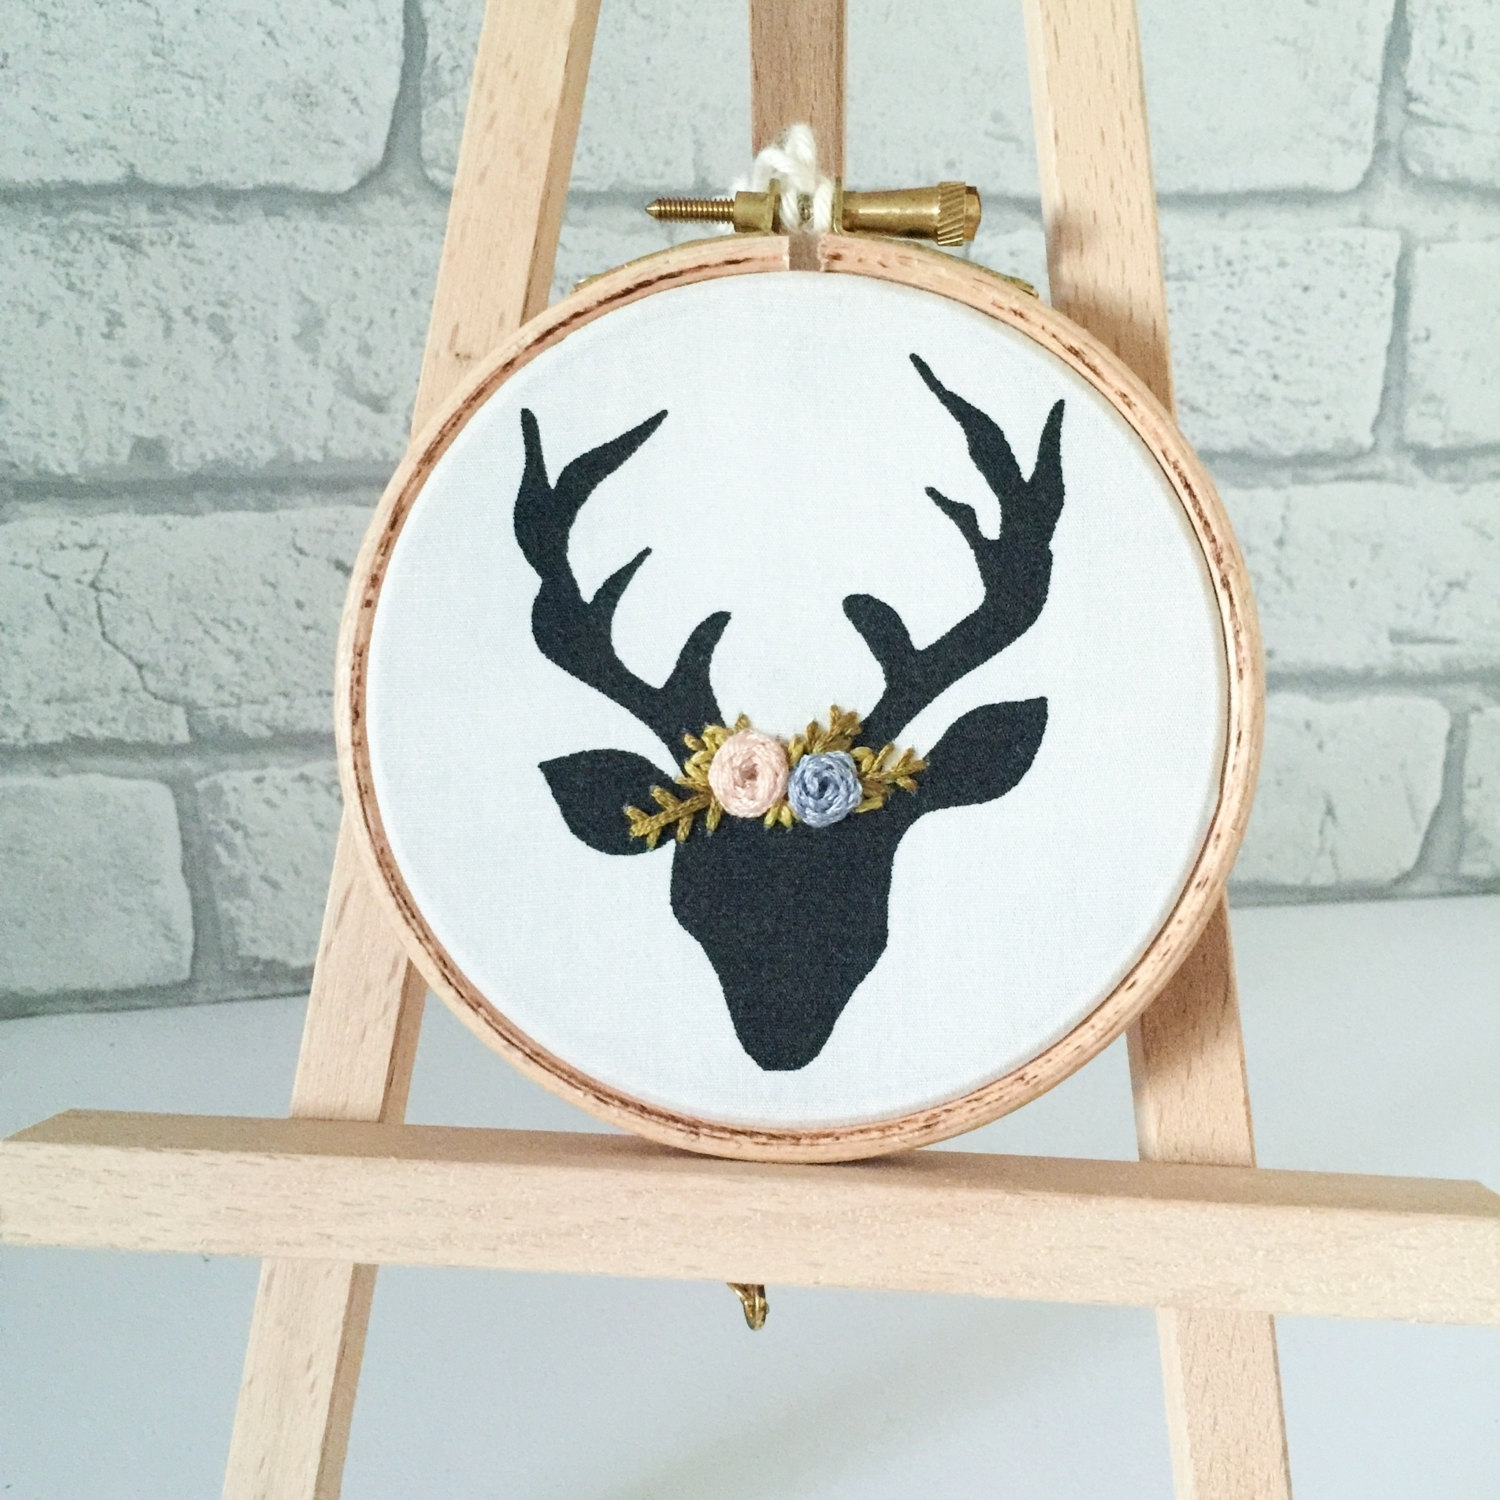 Stag Head, Hand Embroidery, Deer Head, Wall Hanging, Embroidery Pertaining To Most Recently Released Fabric Hoop Wall Art (View 10 of 15)